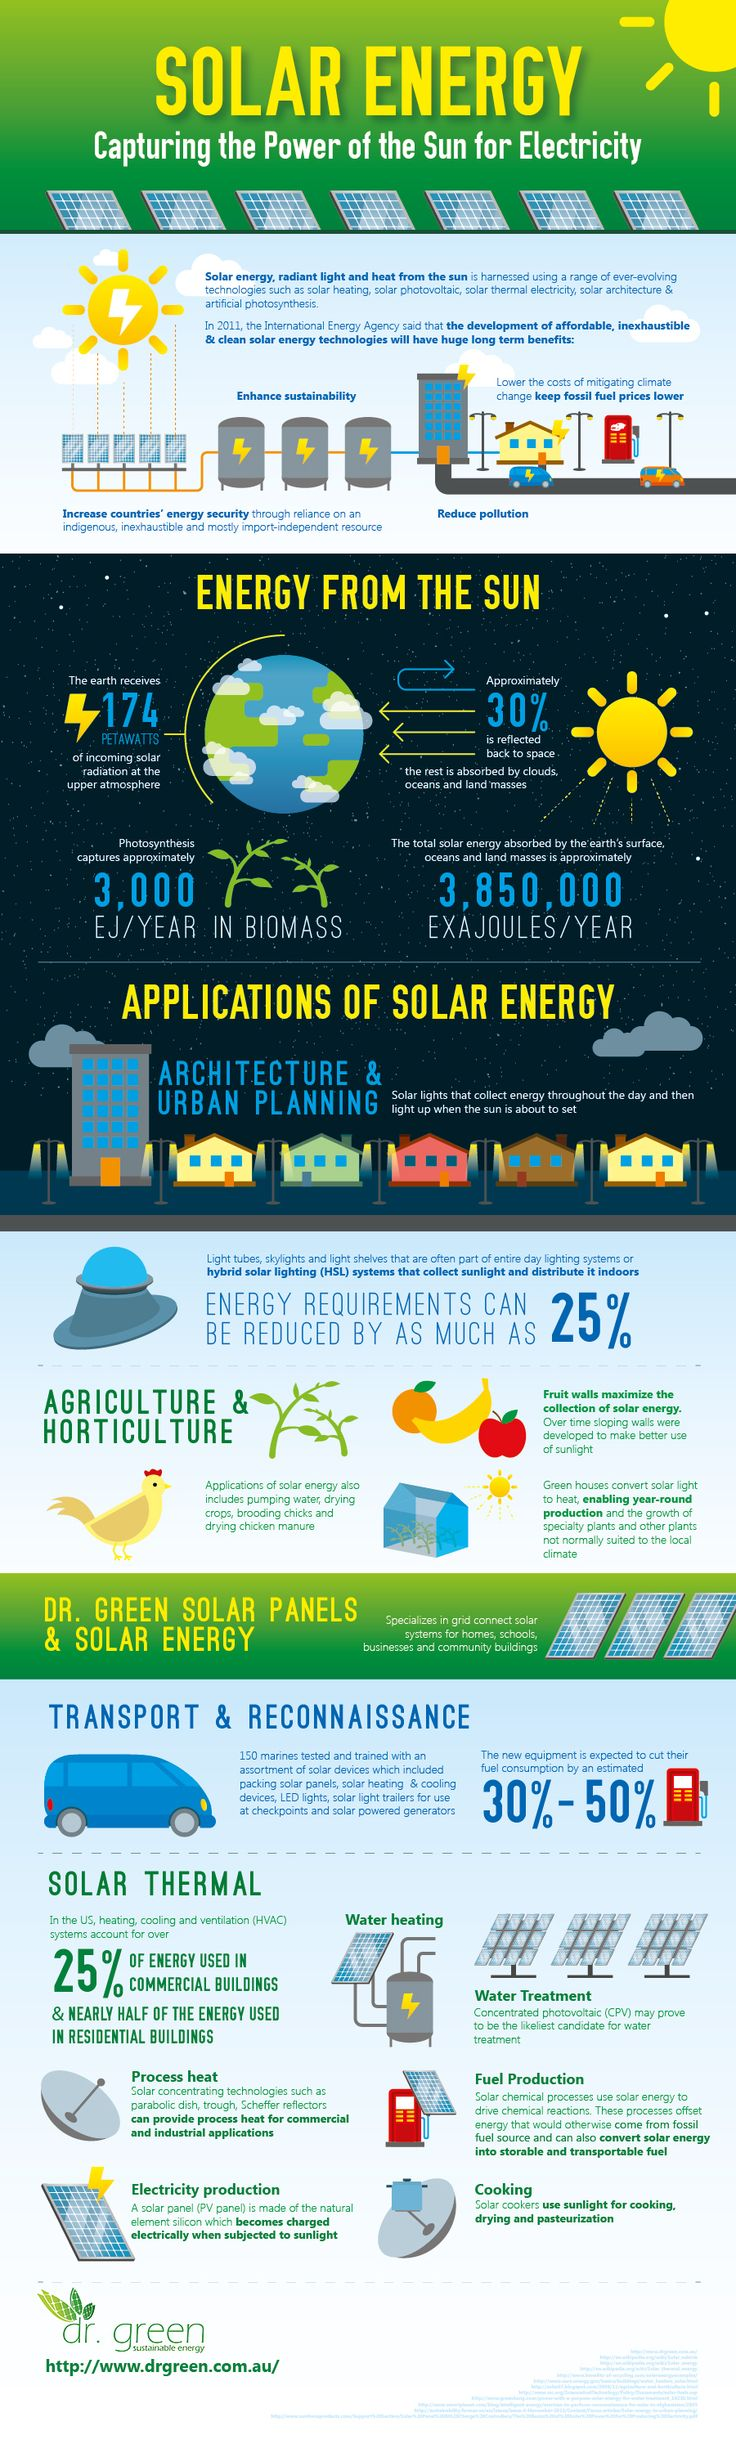 Solar Energy: Capturing The Power Of The Sun For Electricity [INFOGRAPHIC] #solar#energy